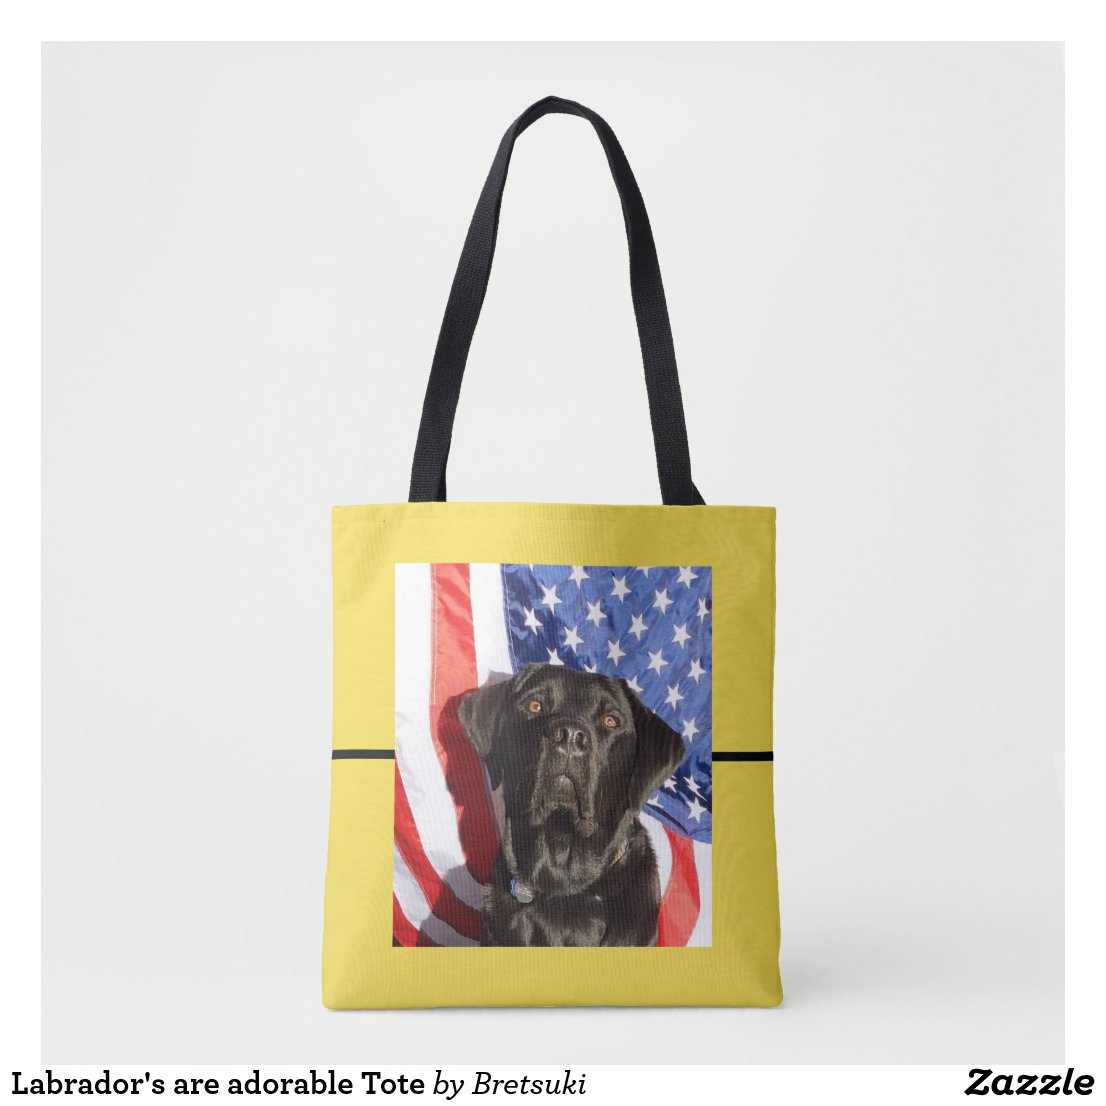 Labrador's are adorable Tote